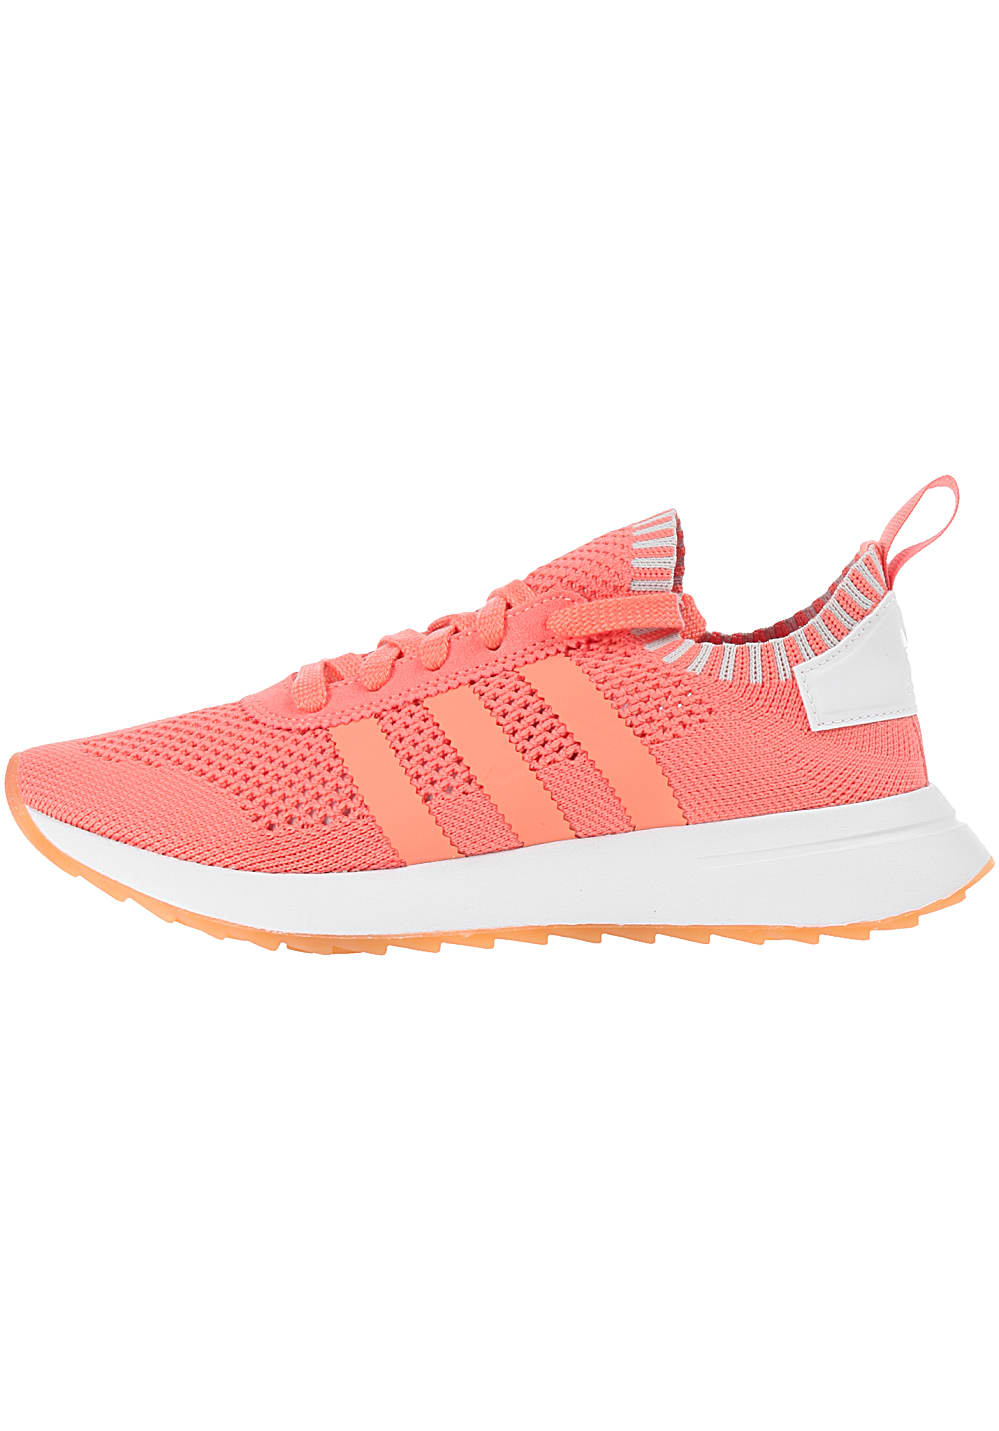 Damen Für Sneaker Primeknit Flashback Adidas Originals Orange n0wPkO